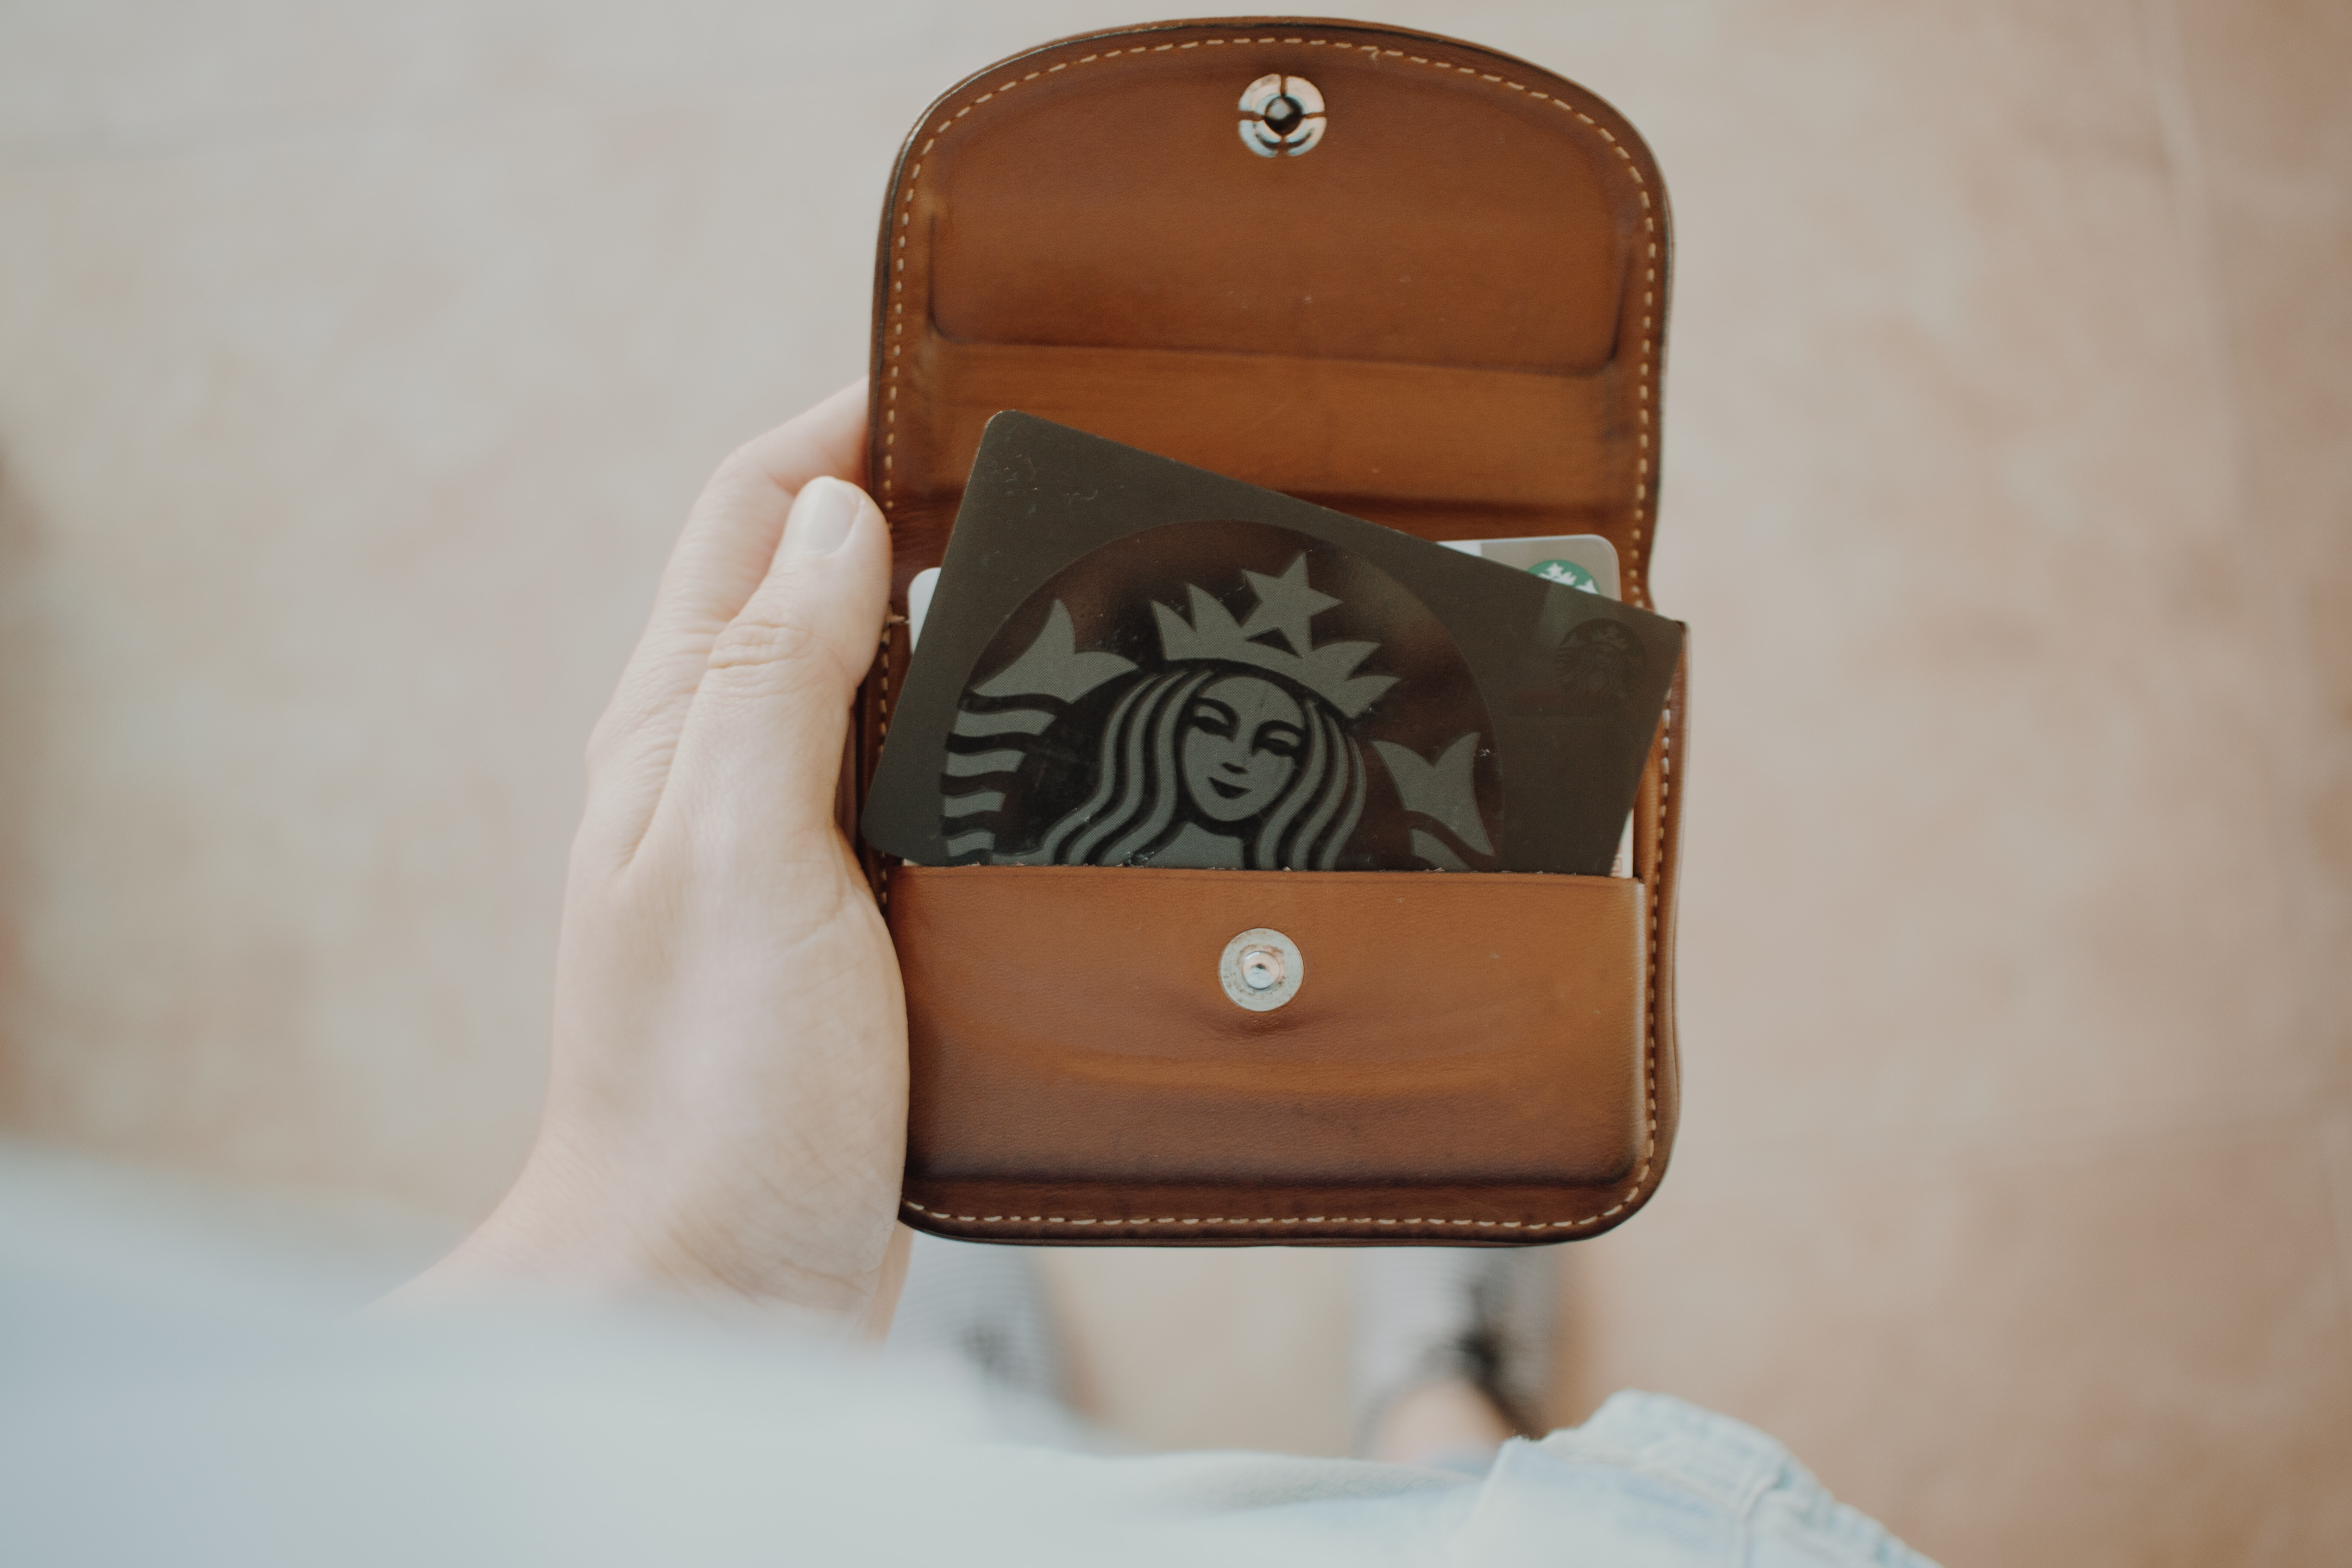 a starbucks loyalty card inside a brown leather purse